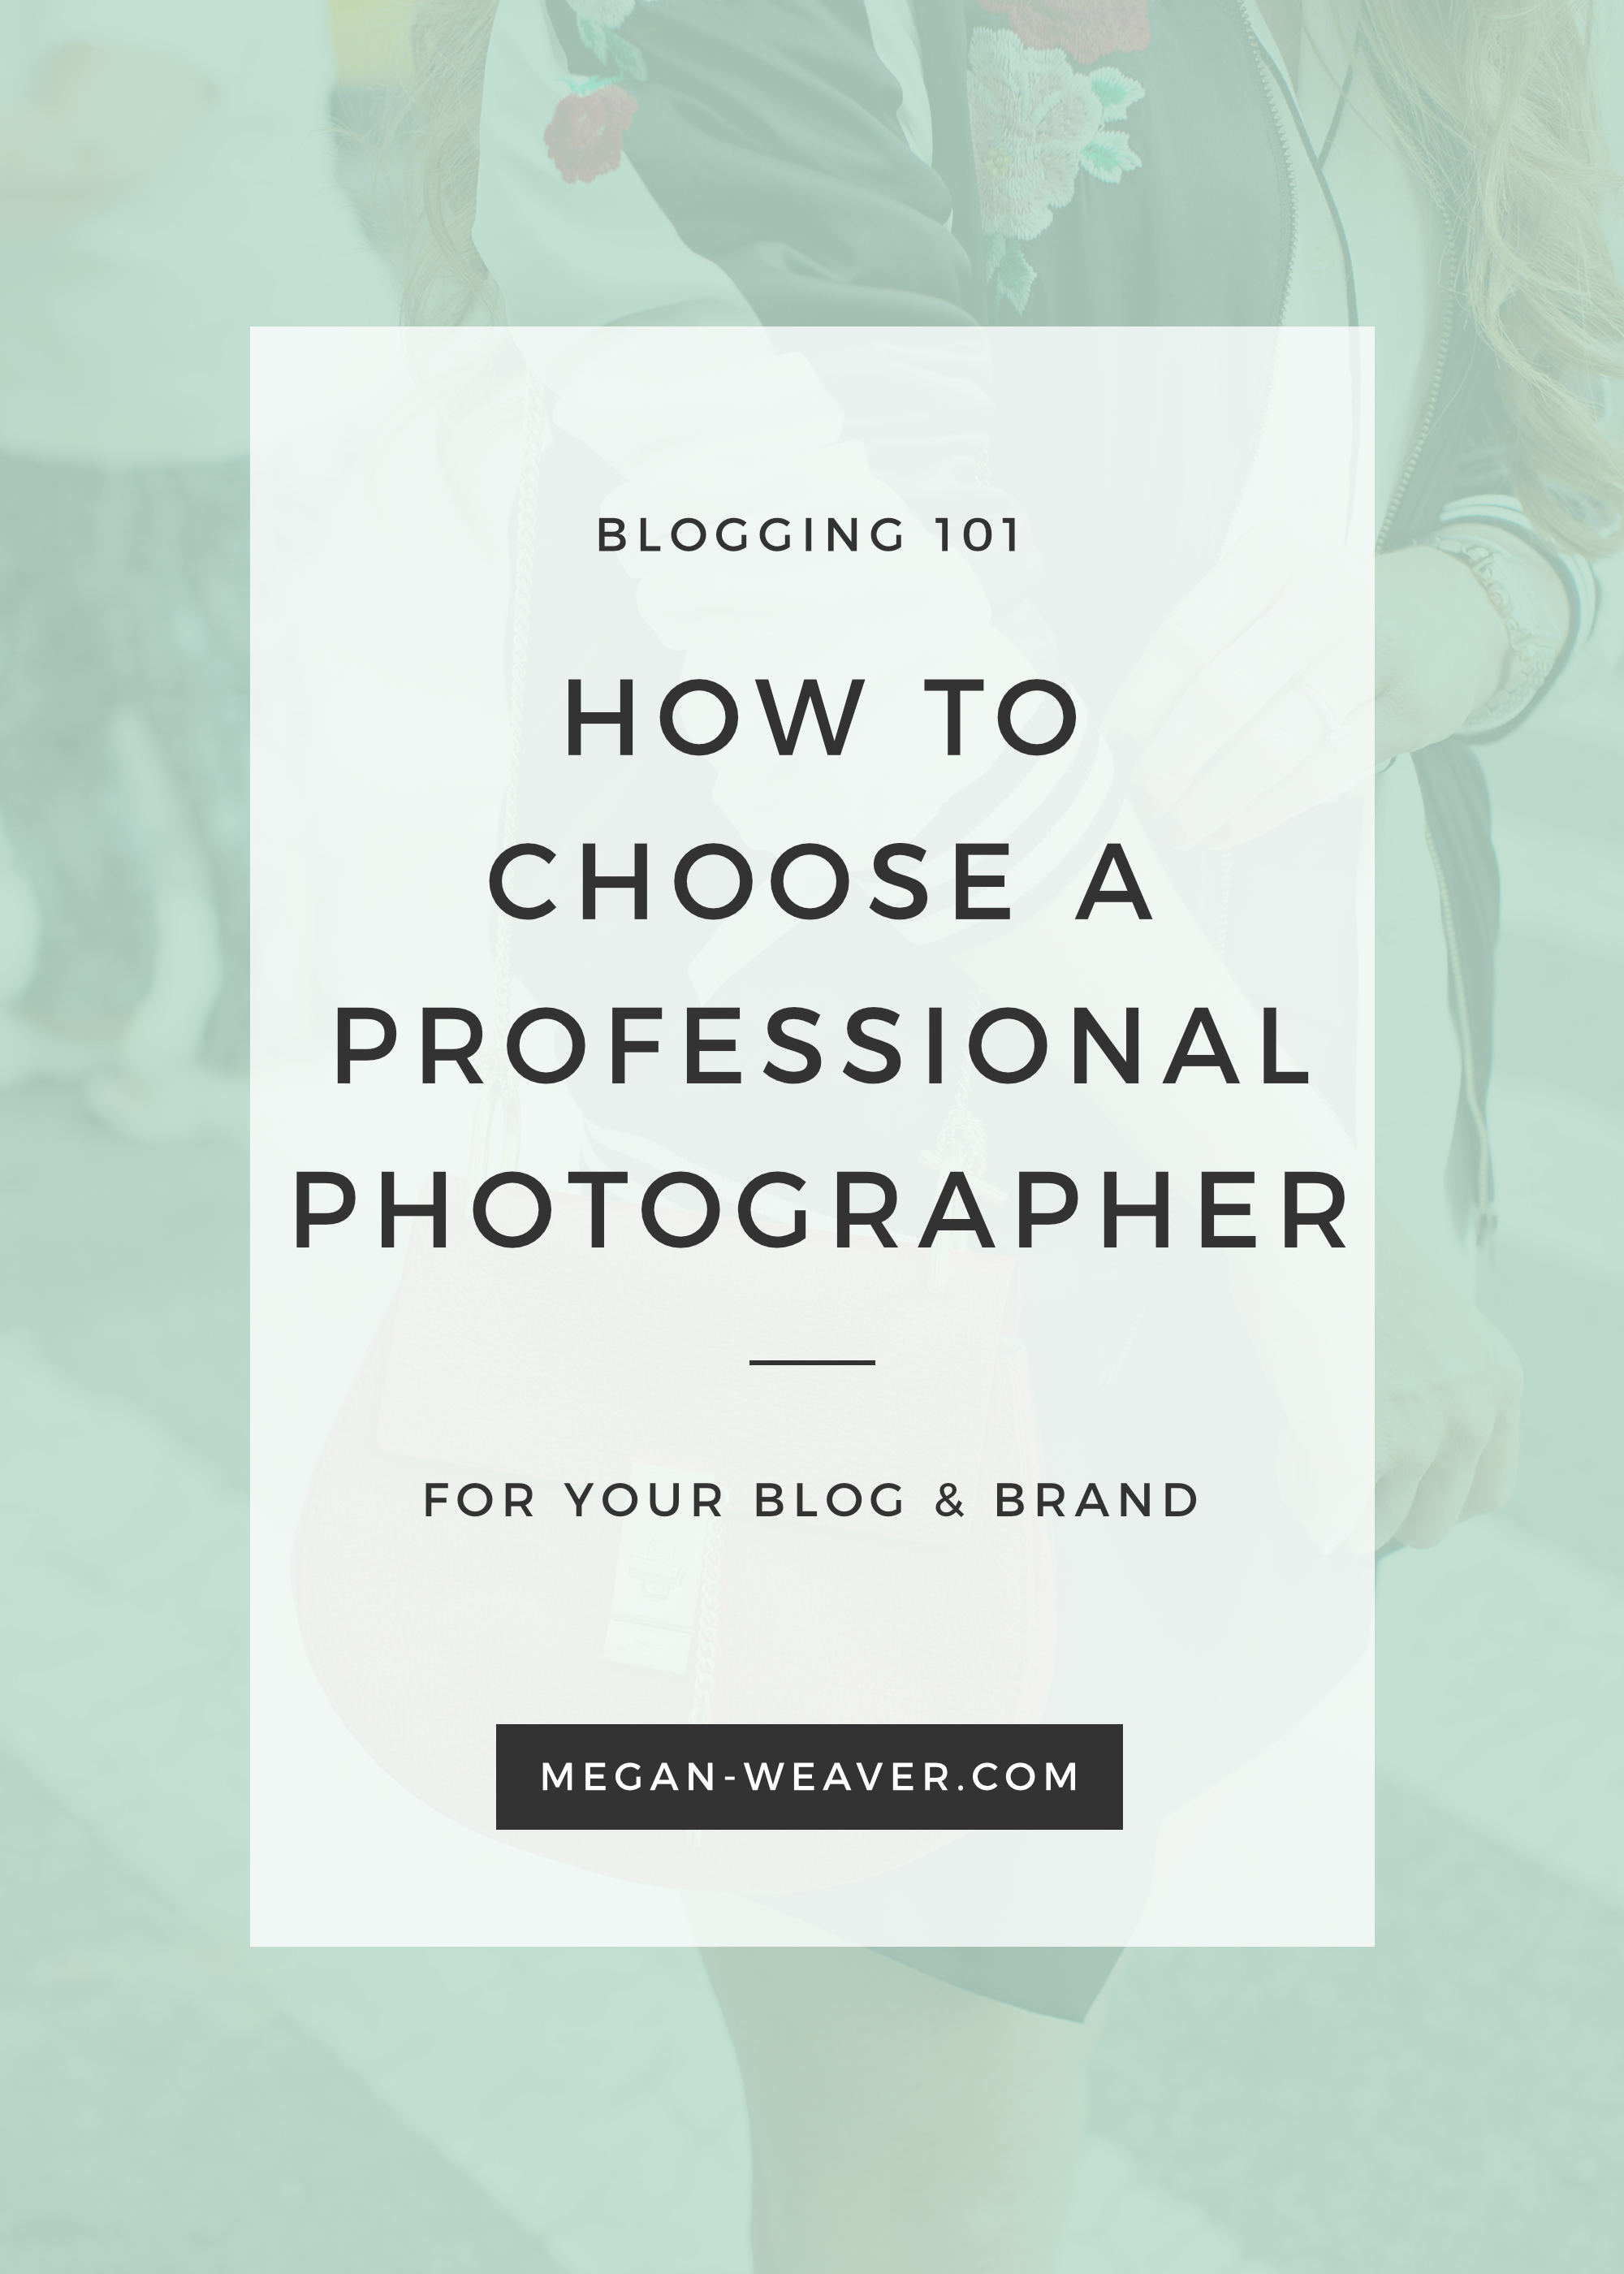 If you'd like to take your blog or business to the next level, I'm sharing my tips on finding and hiring a professional photographer for your brand!